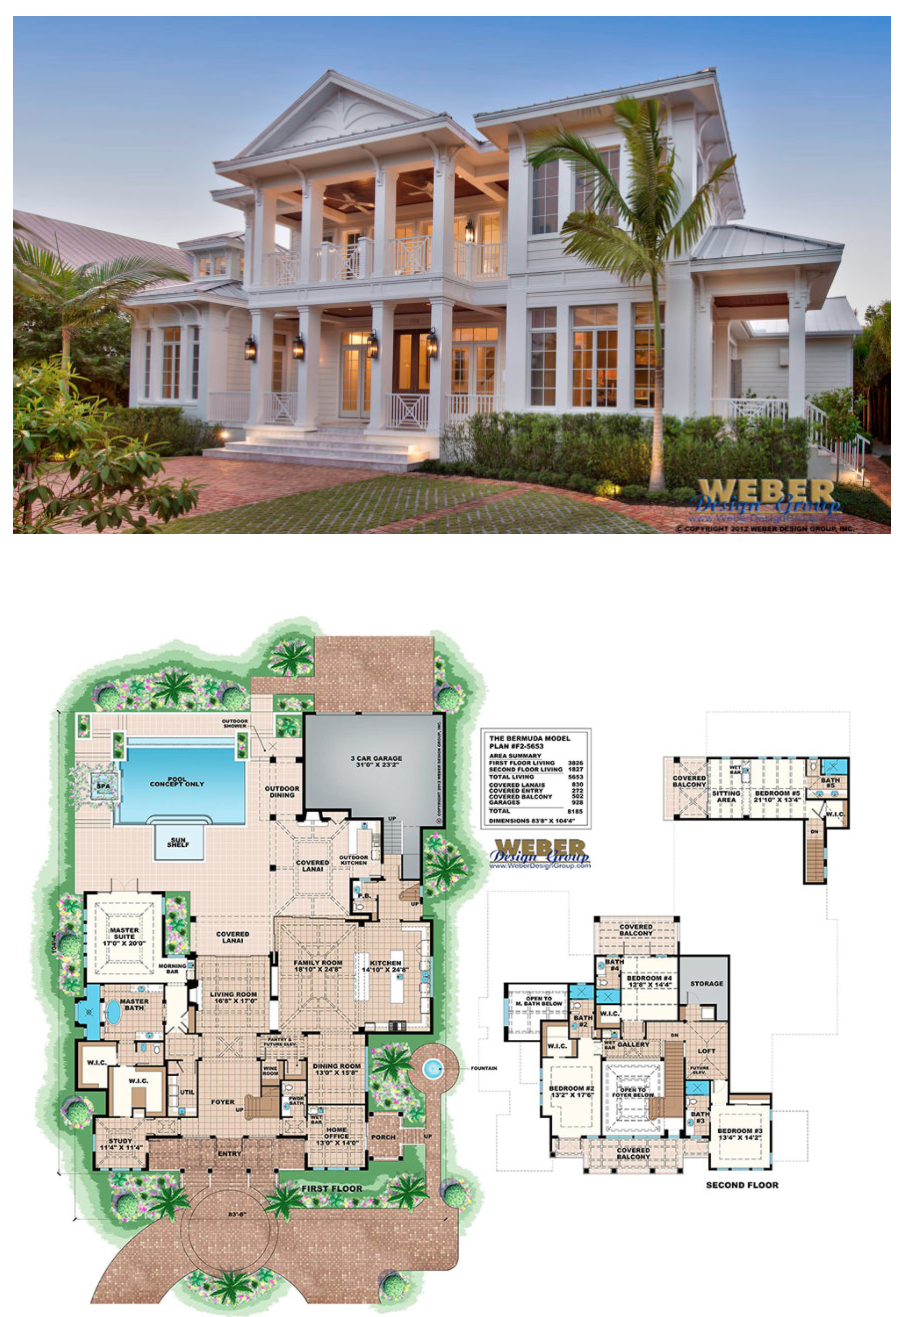 West Indies House Plan: 2 Story Caribbean Beach Home Floor Plan ...